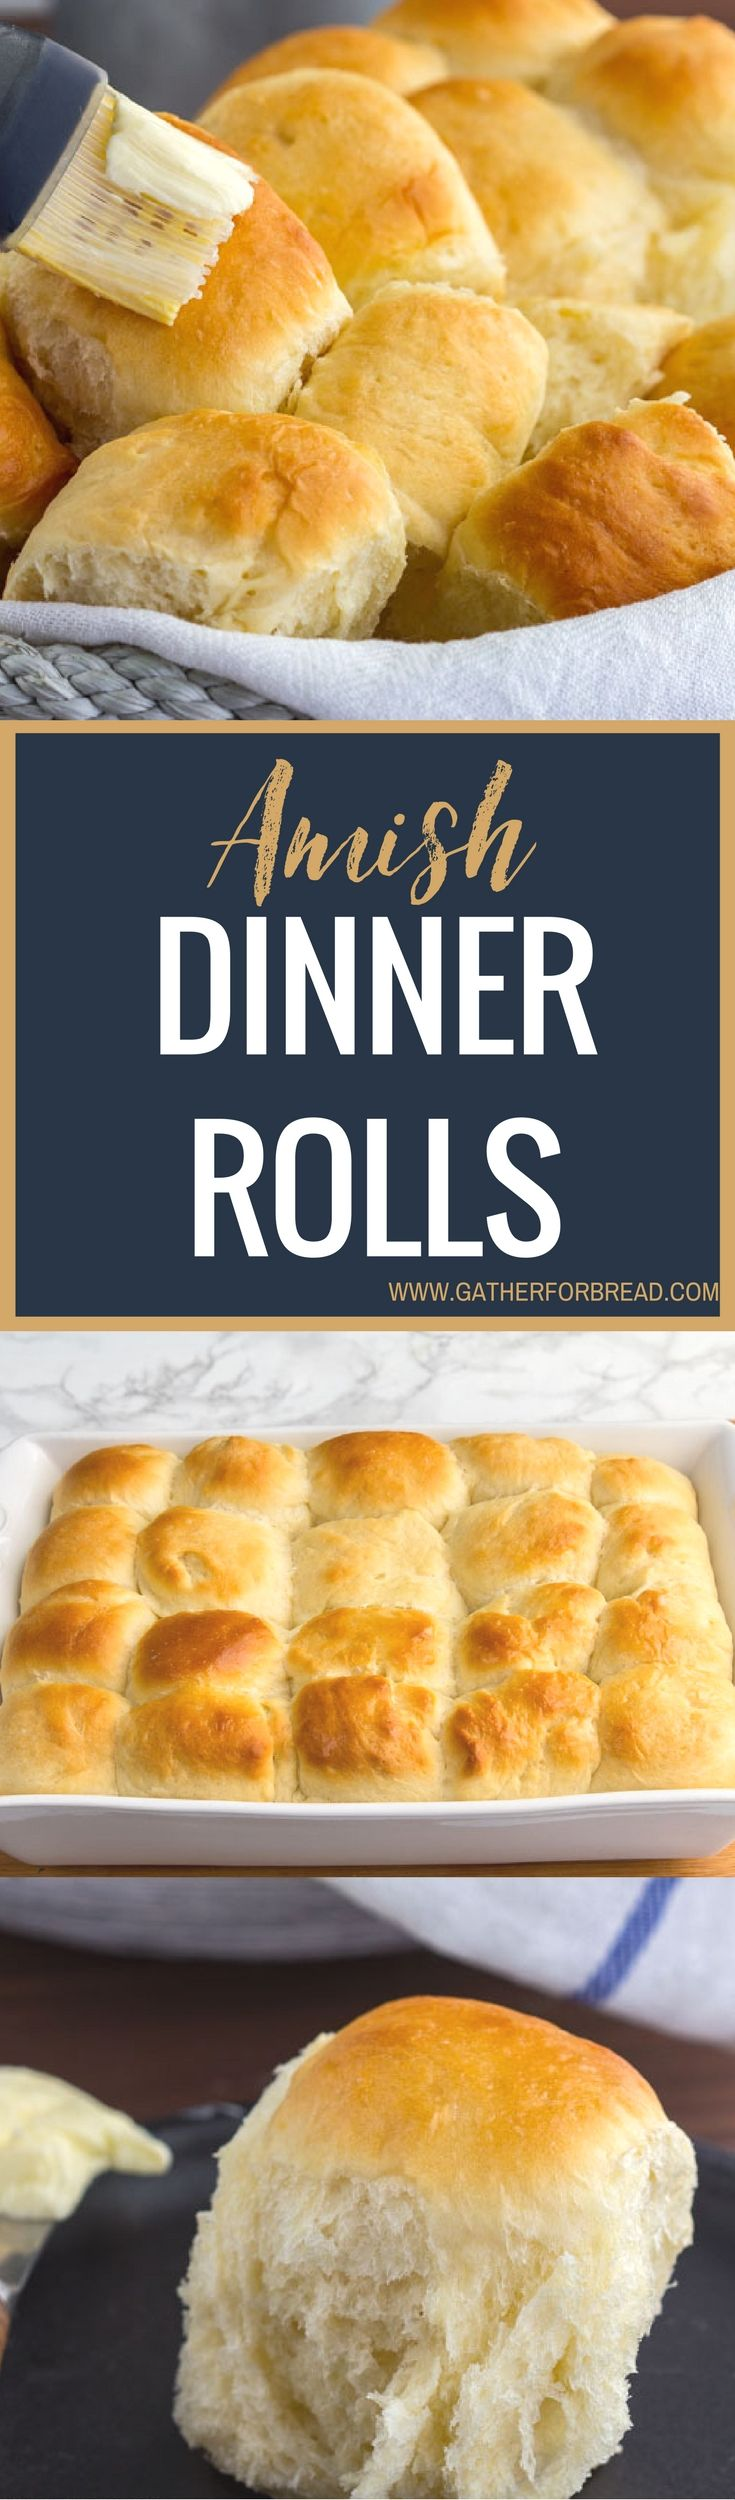 Amish Dinner Rolls - Gather for Bread | Yeast rolls recipe ...